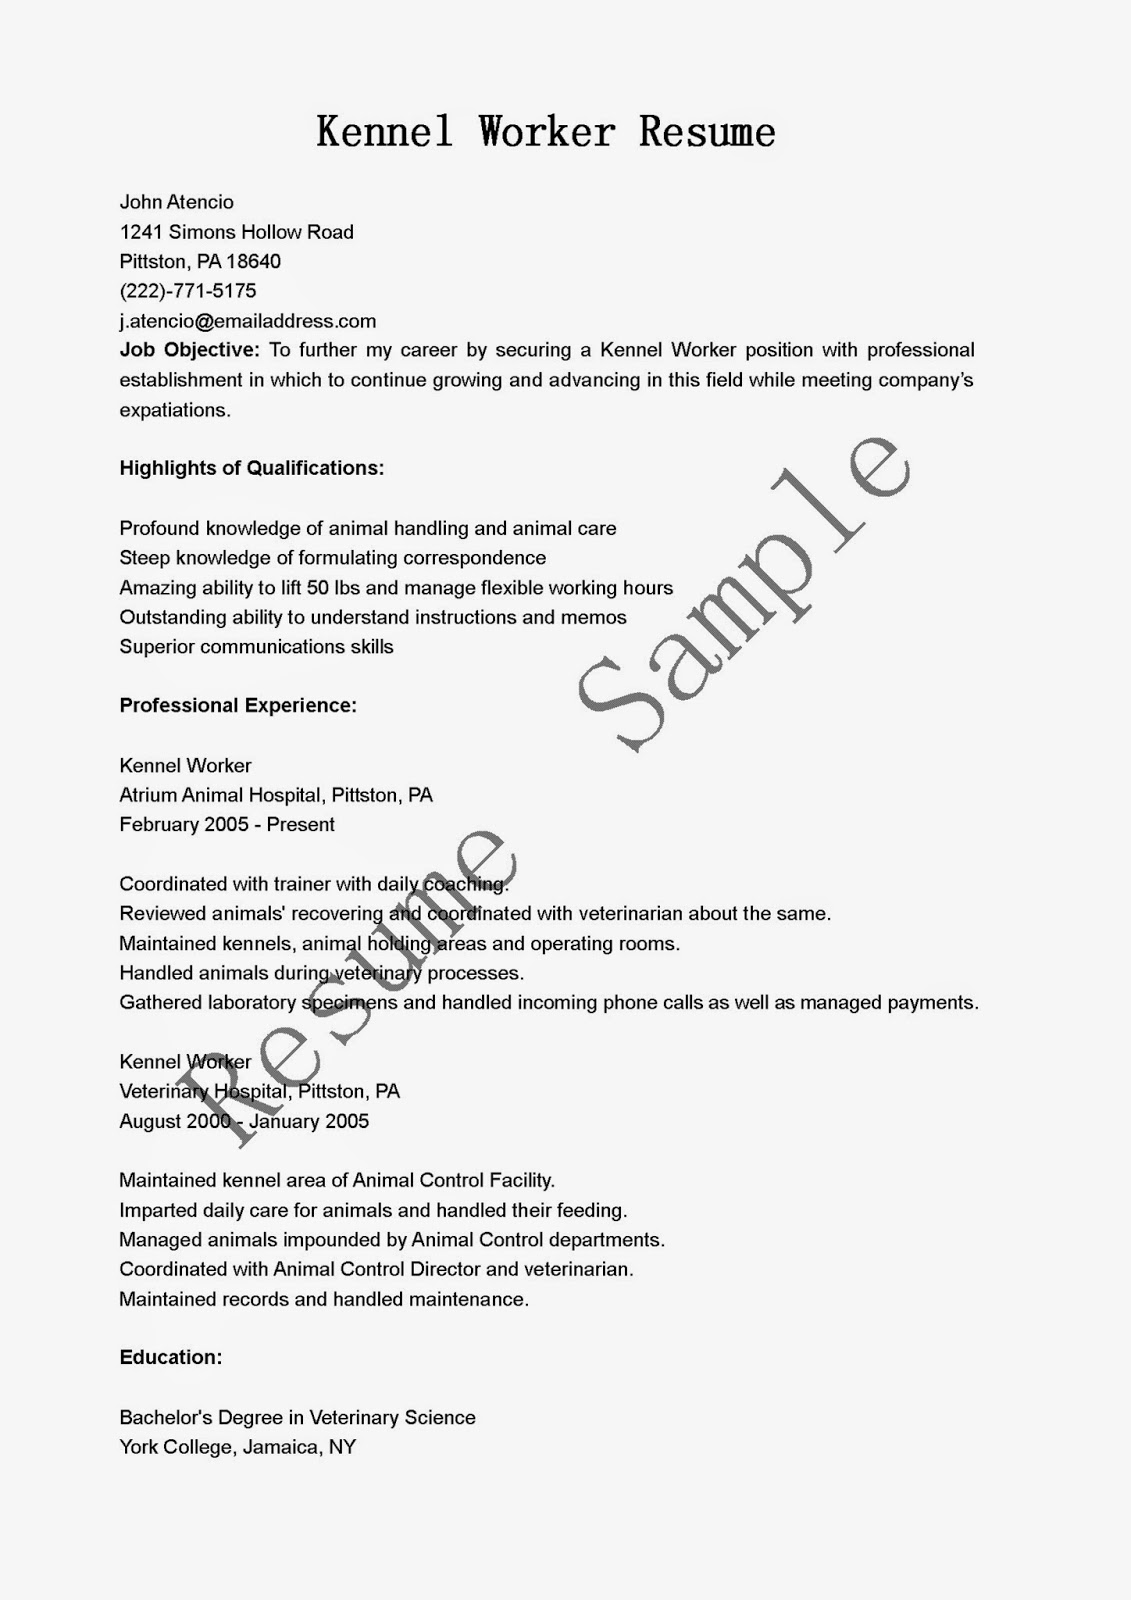 resume samples  kennel worker resume sample